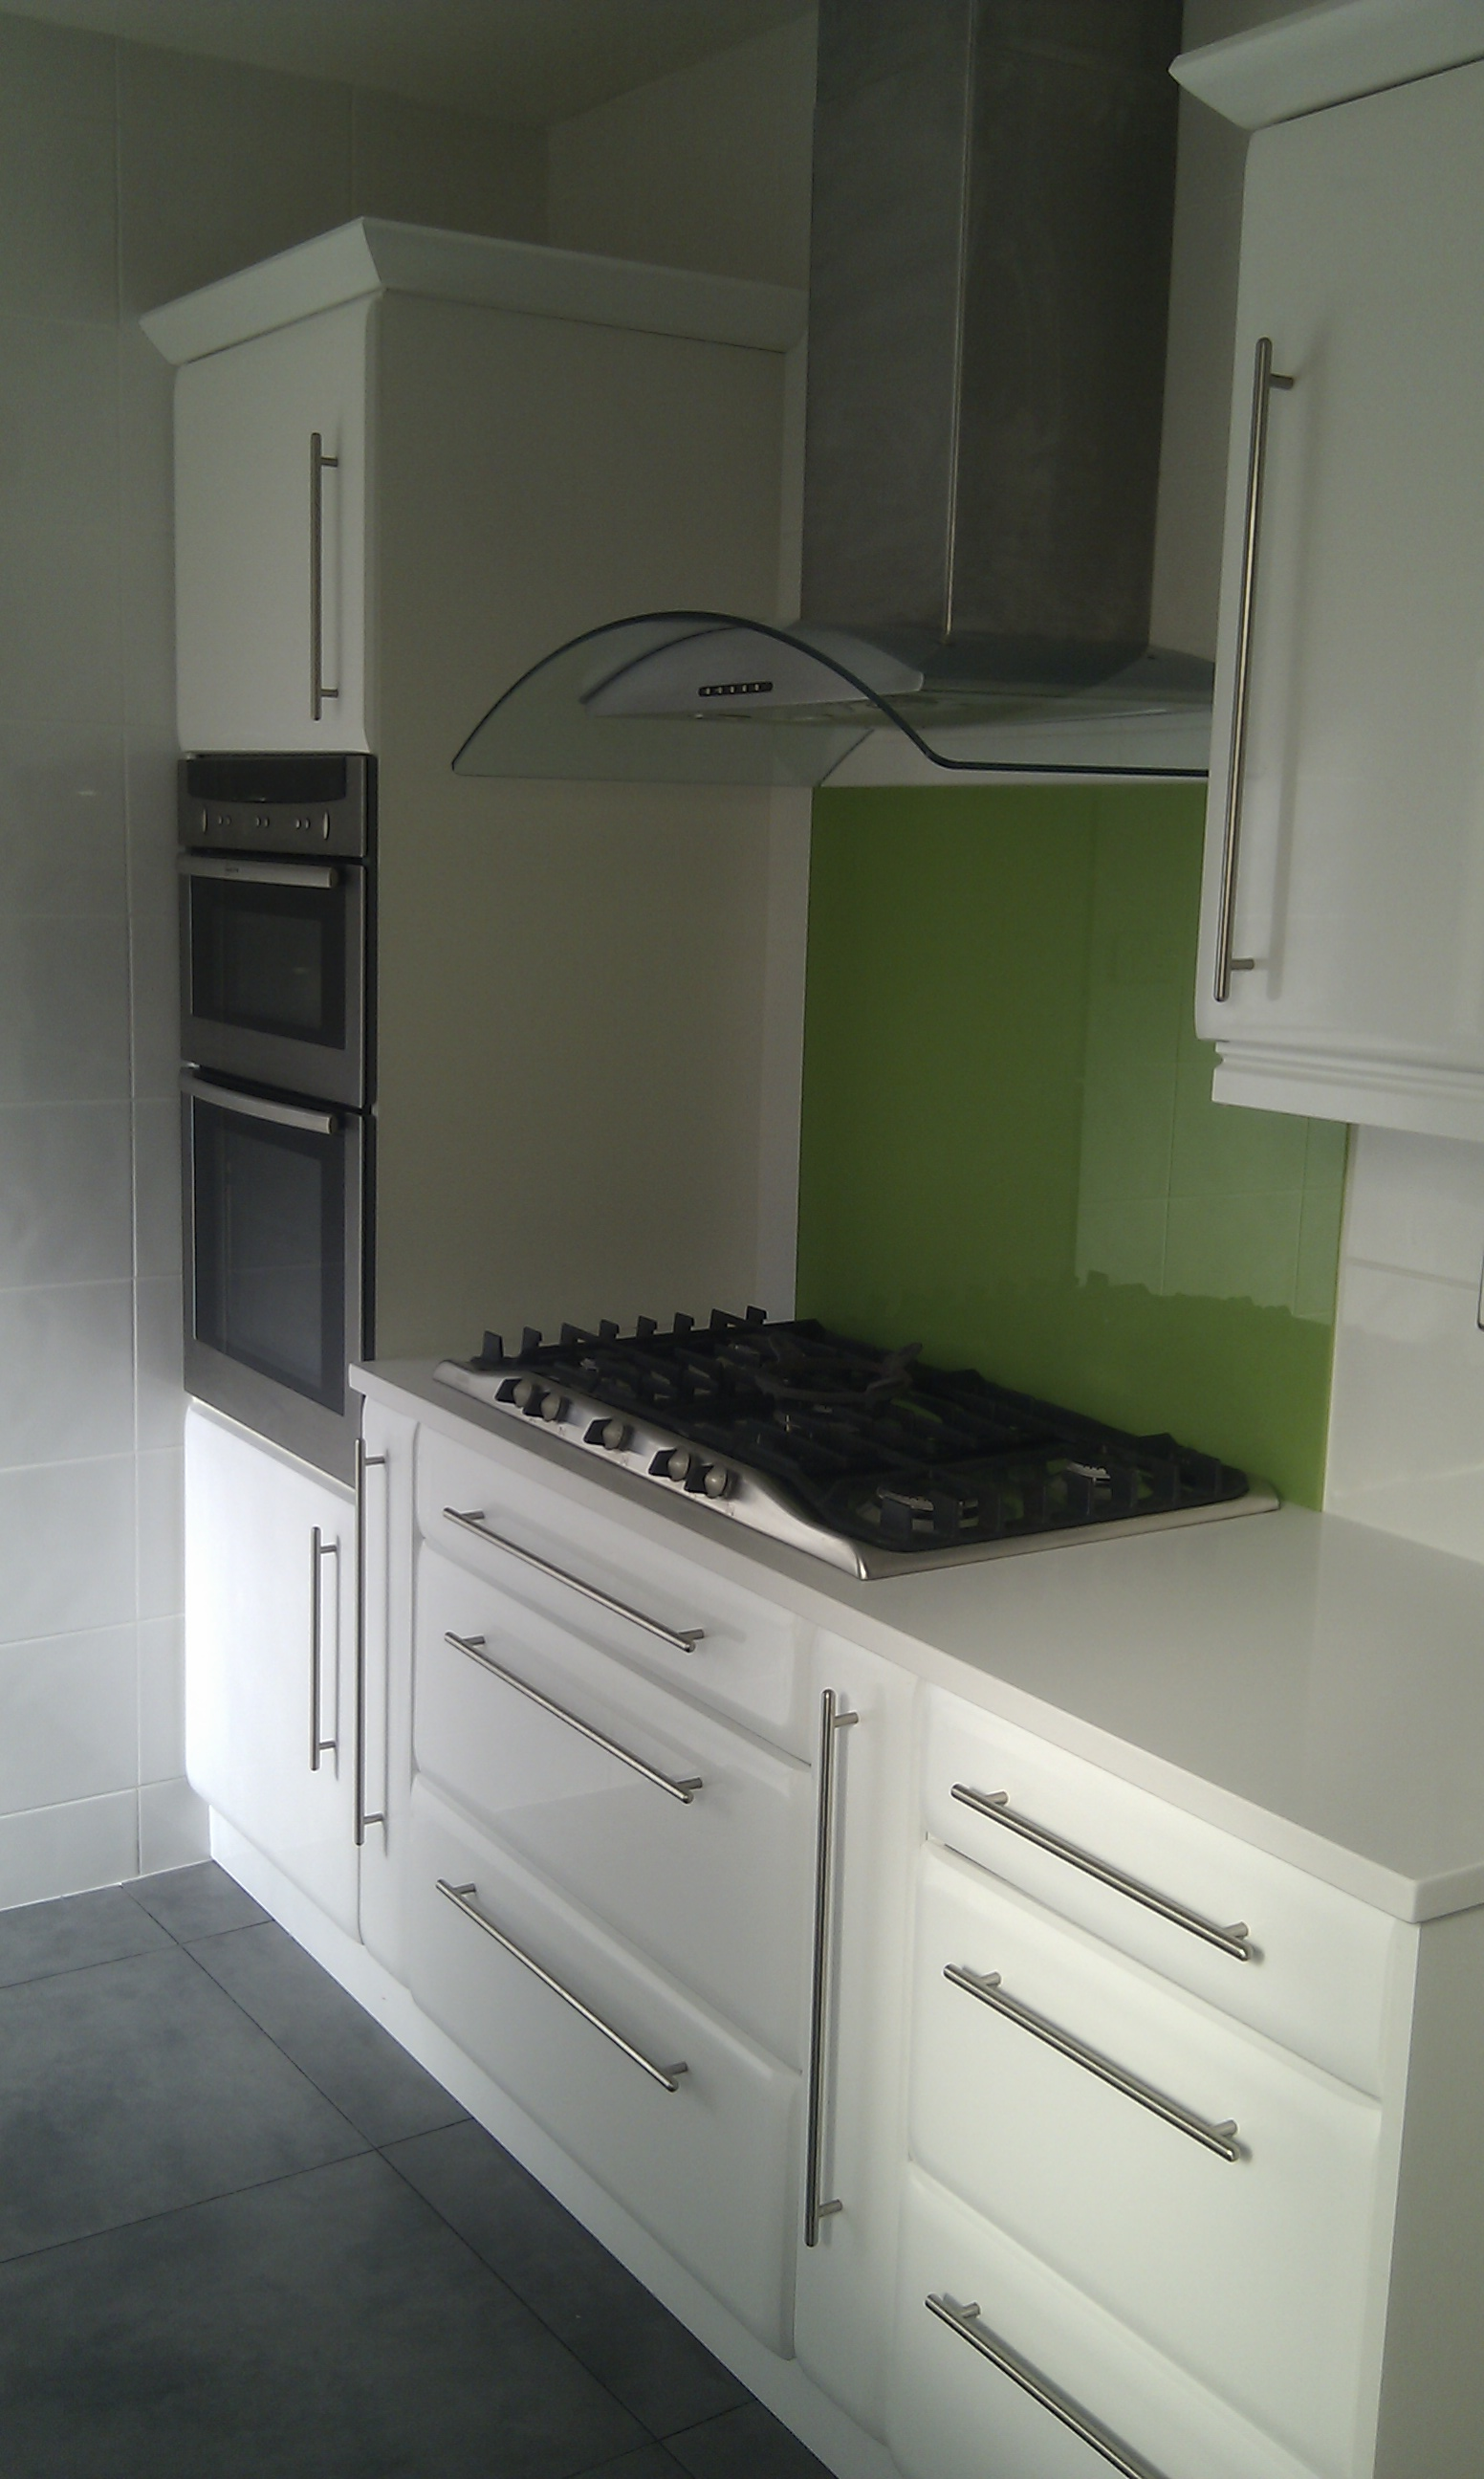 Lightfoot joinery joiner huddersfield manchester for Fitted kitchens